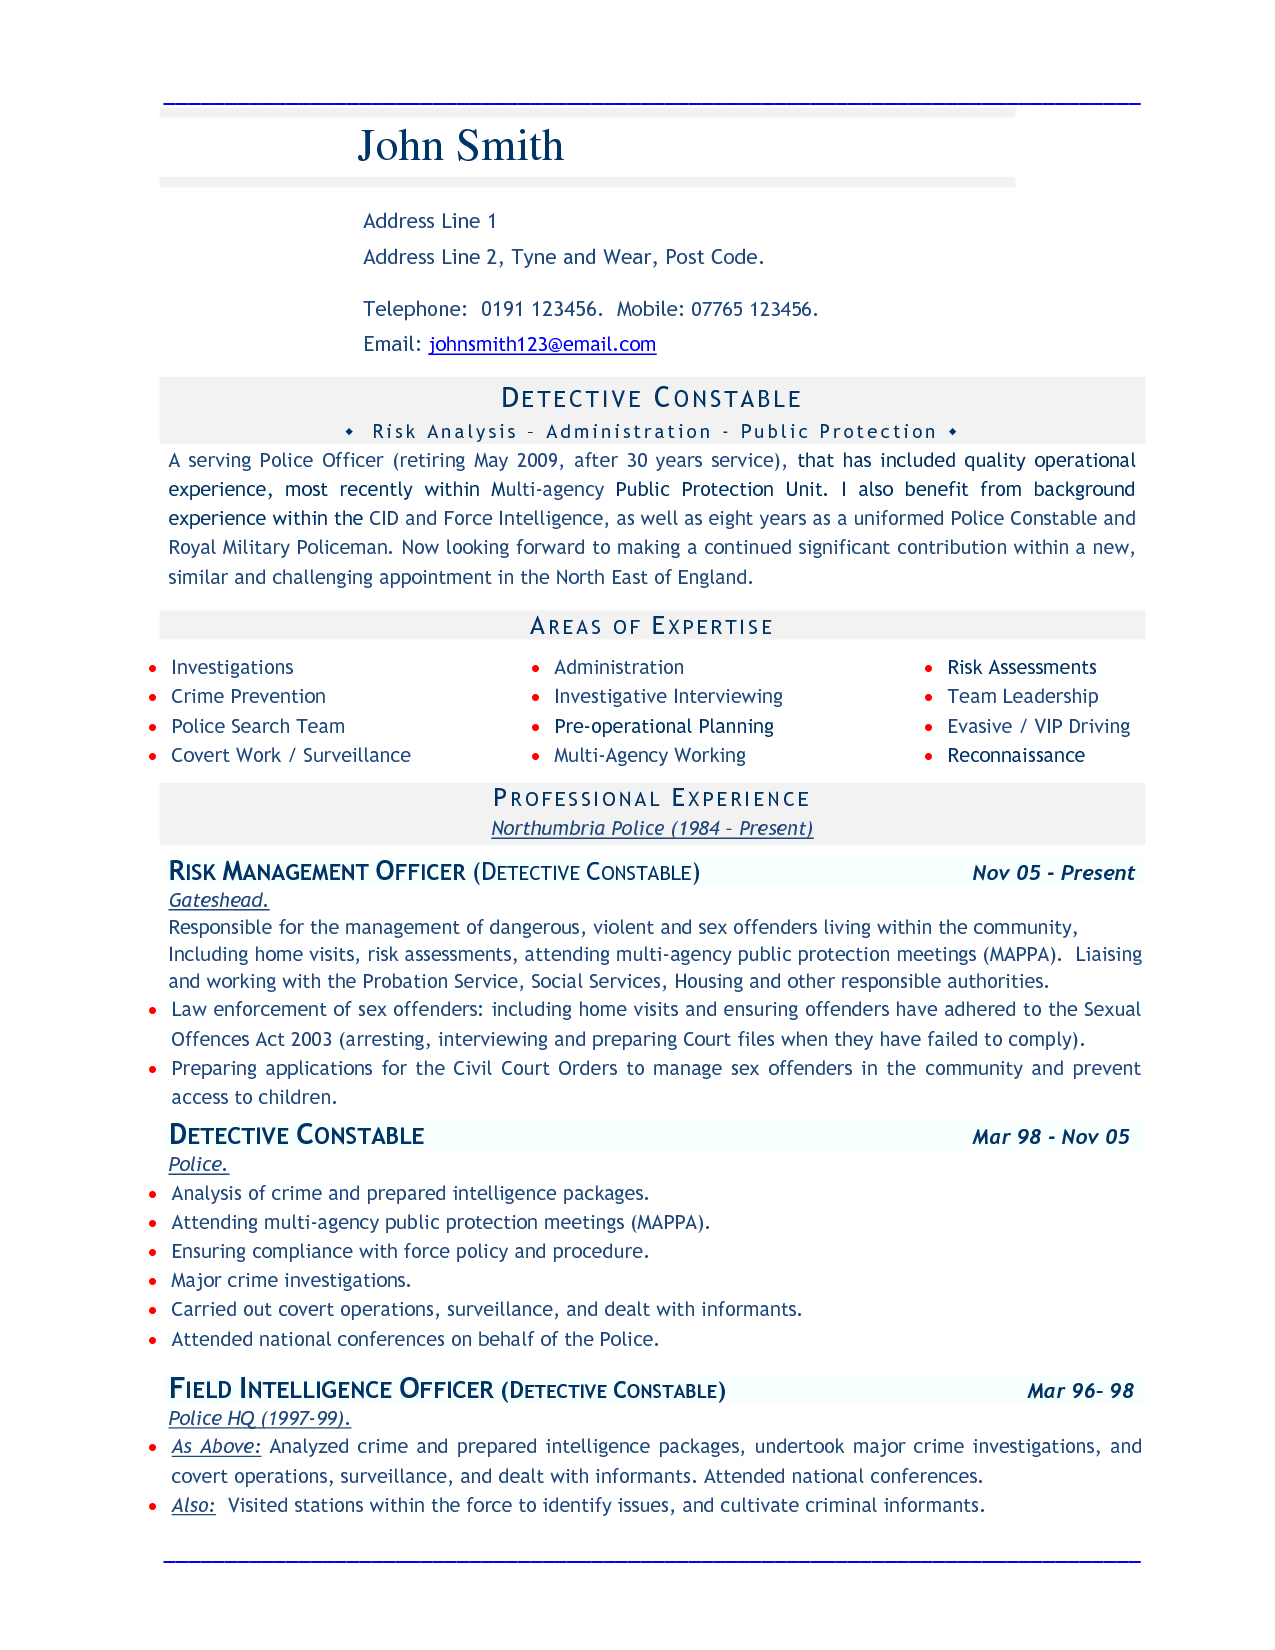 Cover Letter Template Microsoft Word 2010 - Resume Templates Microsoft Word Resume Templates Microsoft Word